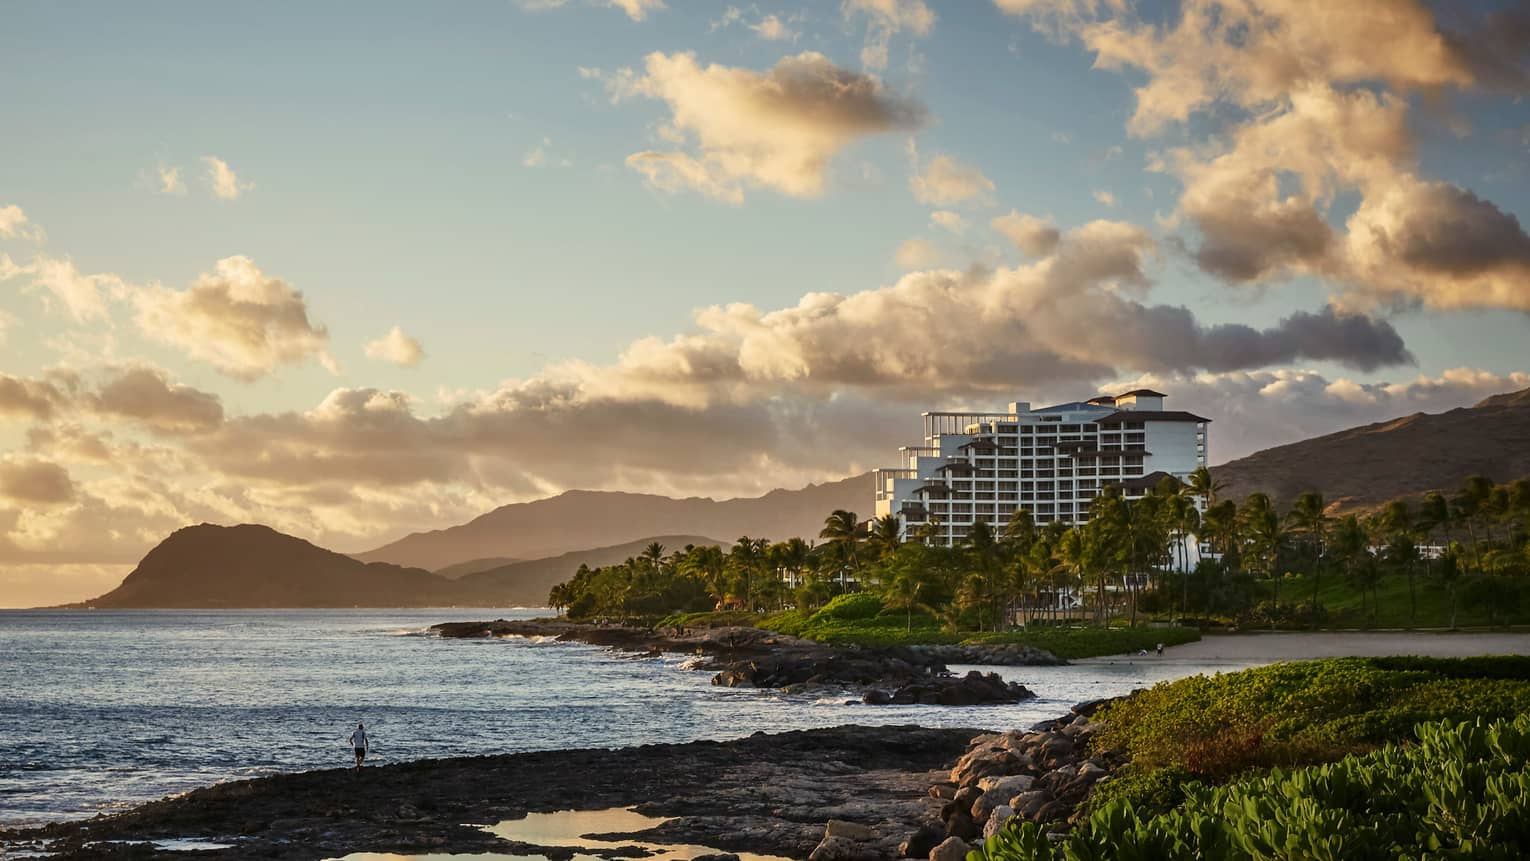 Sunset over Four Seasons Resort Oahu building on rugged coast, Waianae mountains